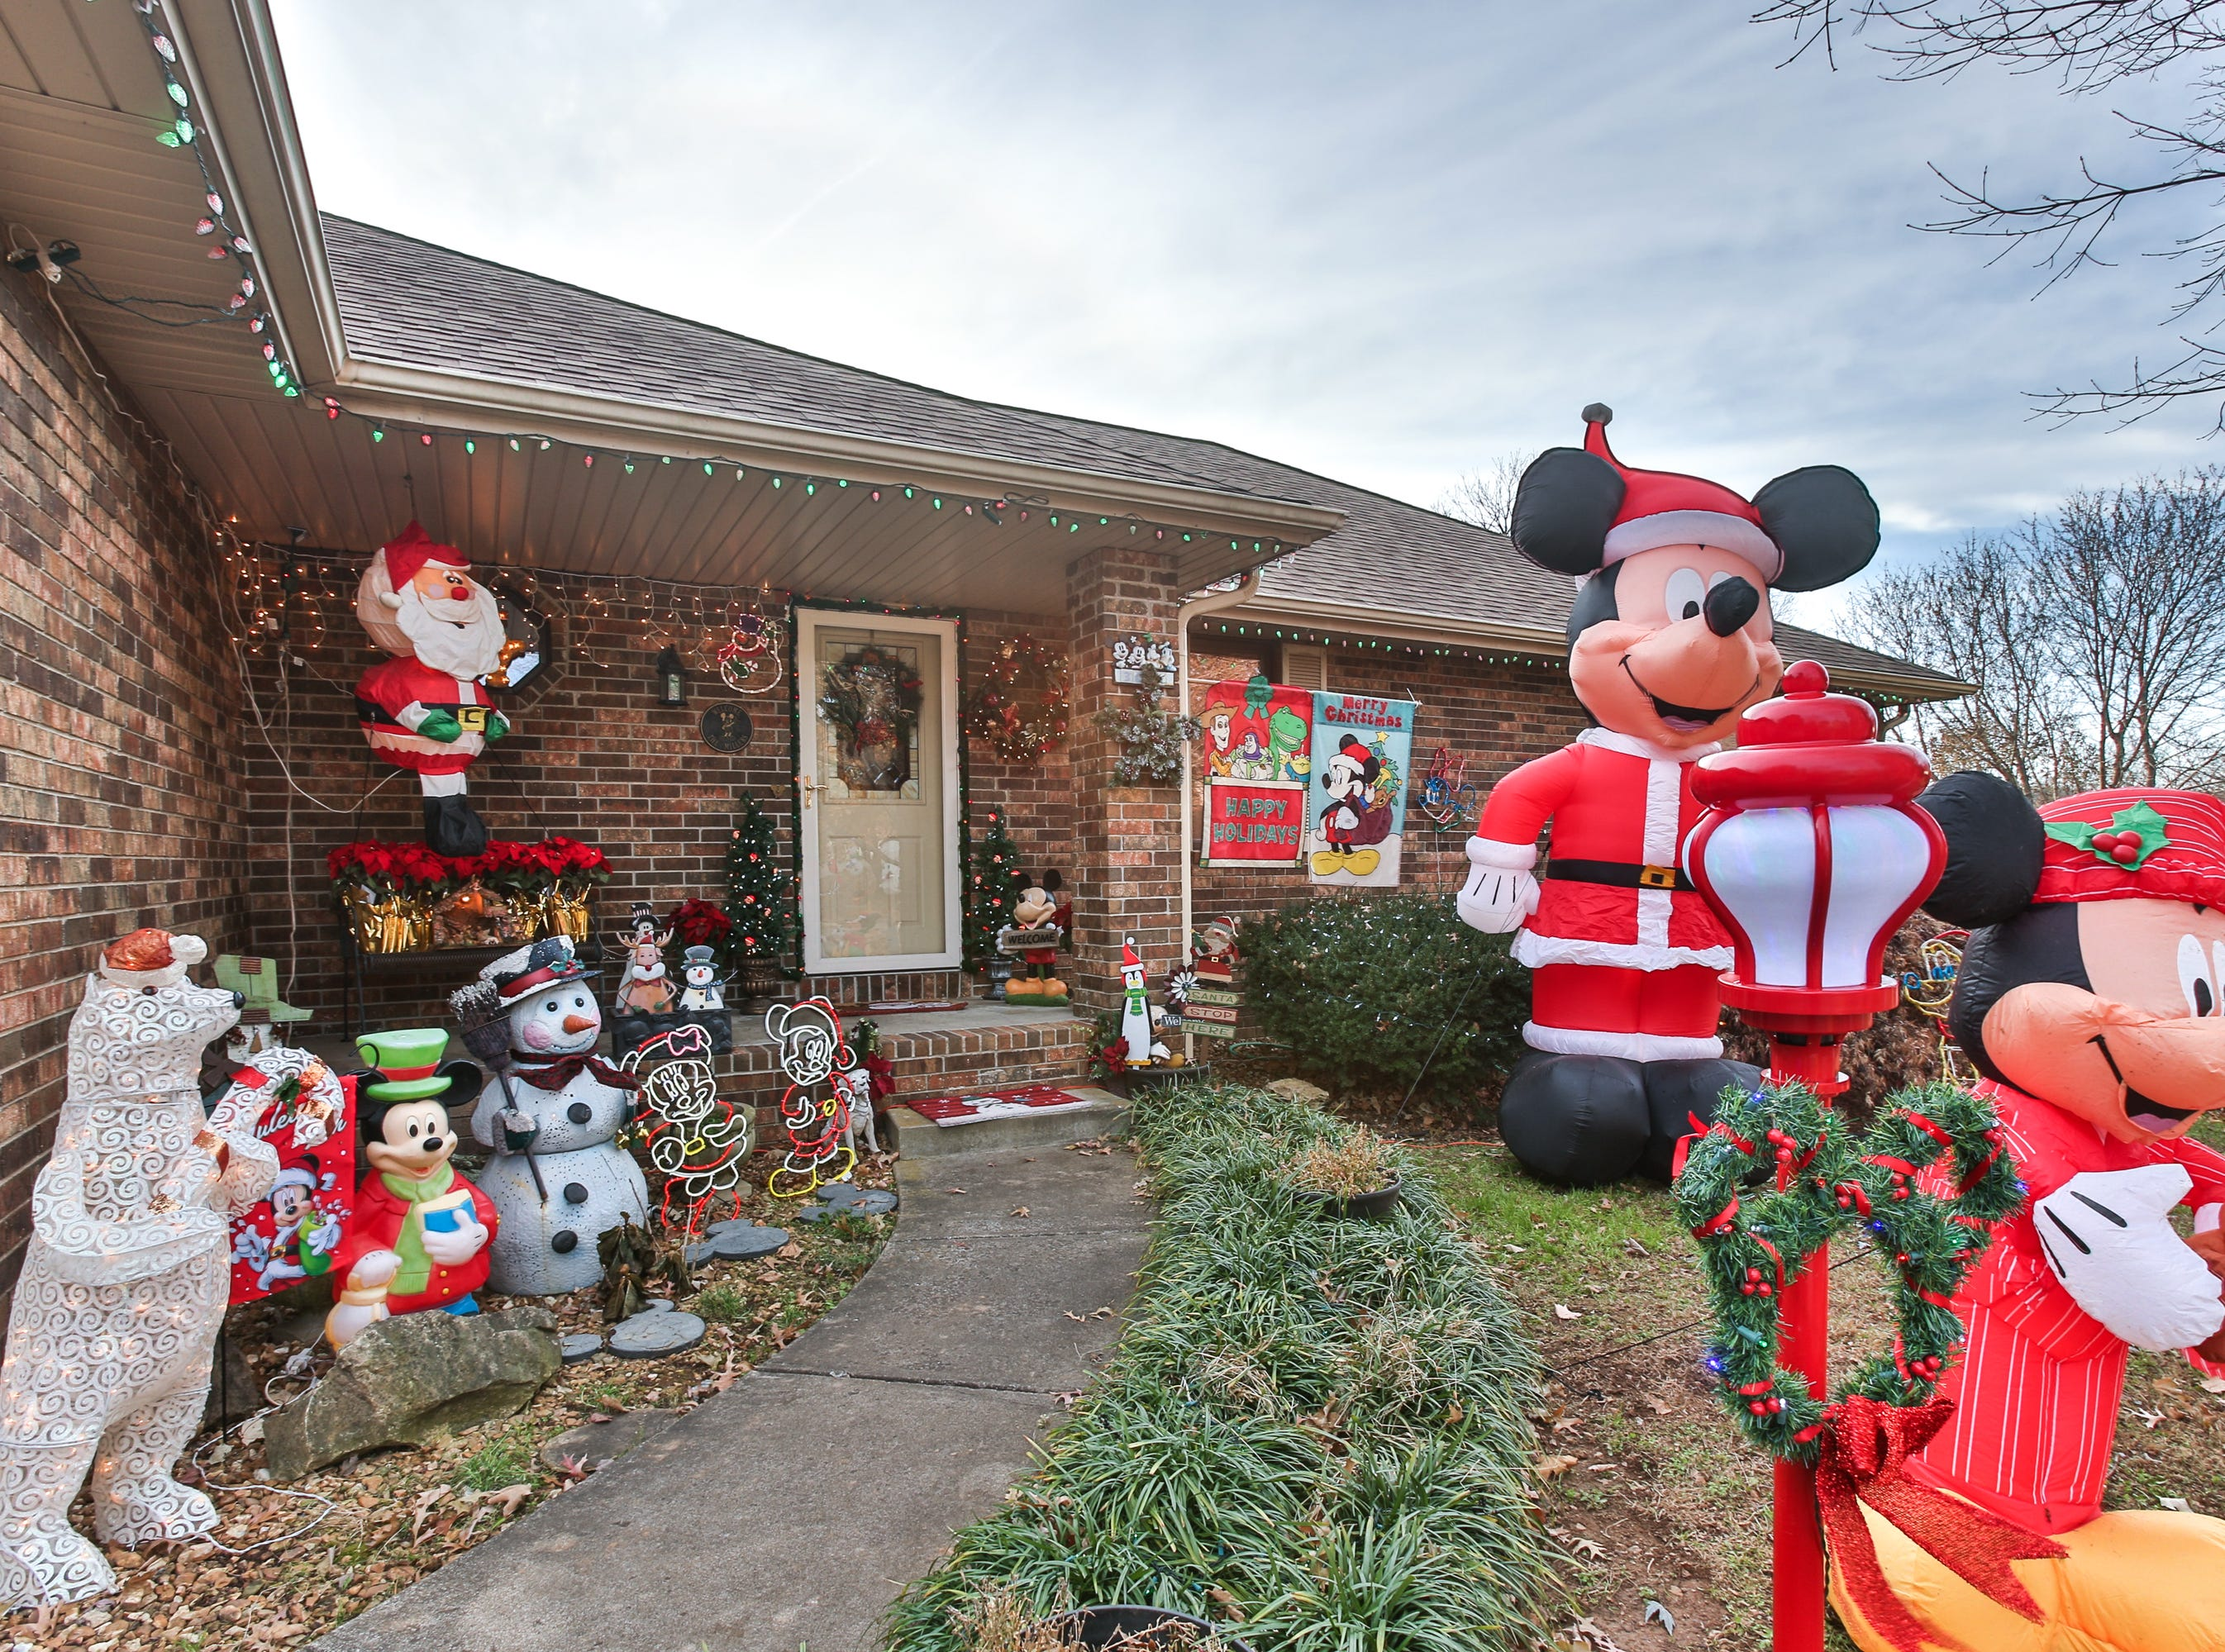 The Millers' affection for Christmas spills onto their lawn. This year, the Millers' home will be included in the News-Leaders roundup of the best home Christmas light displays.